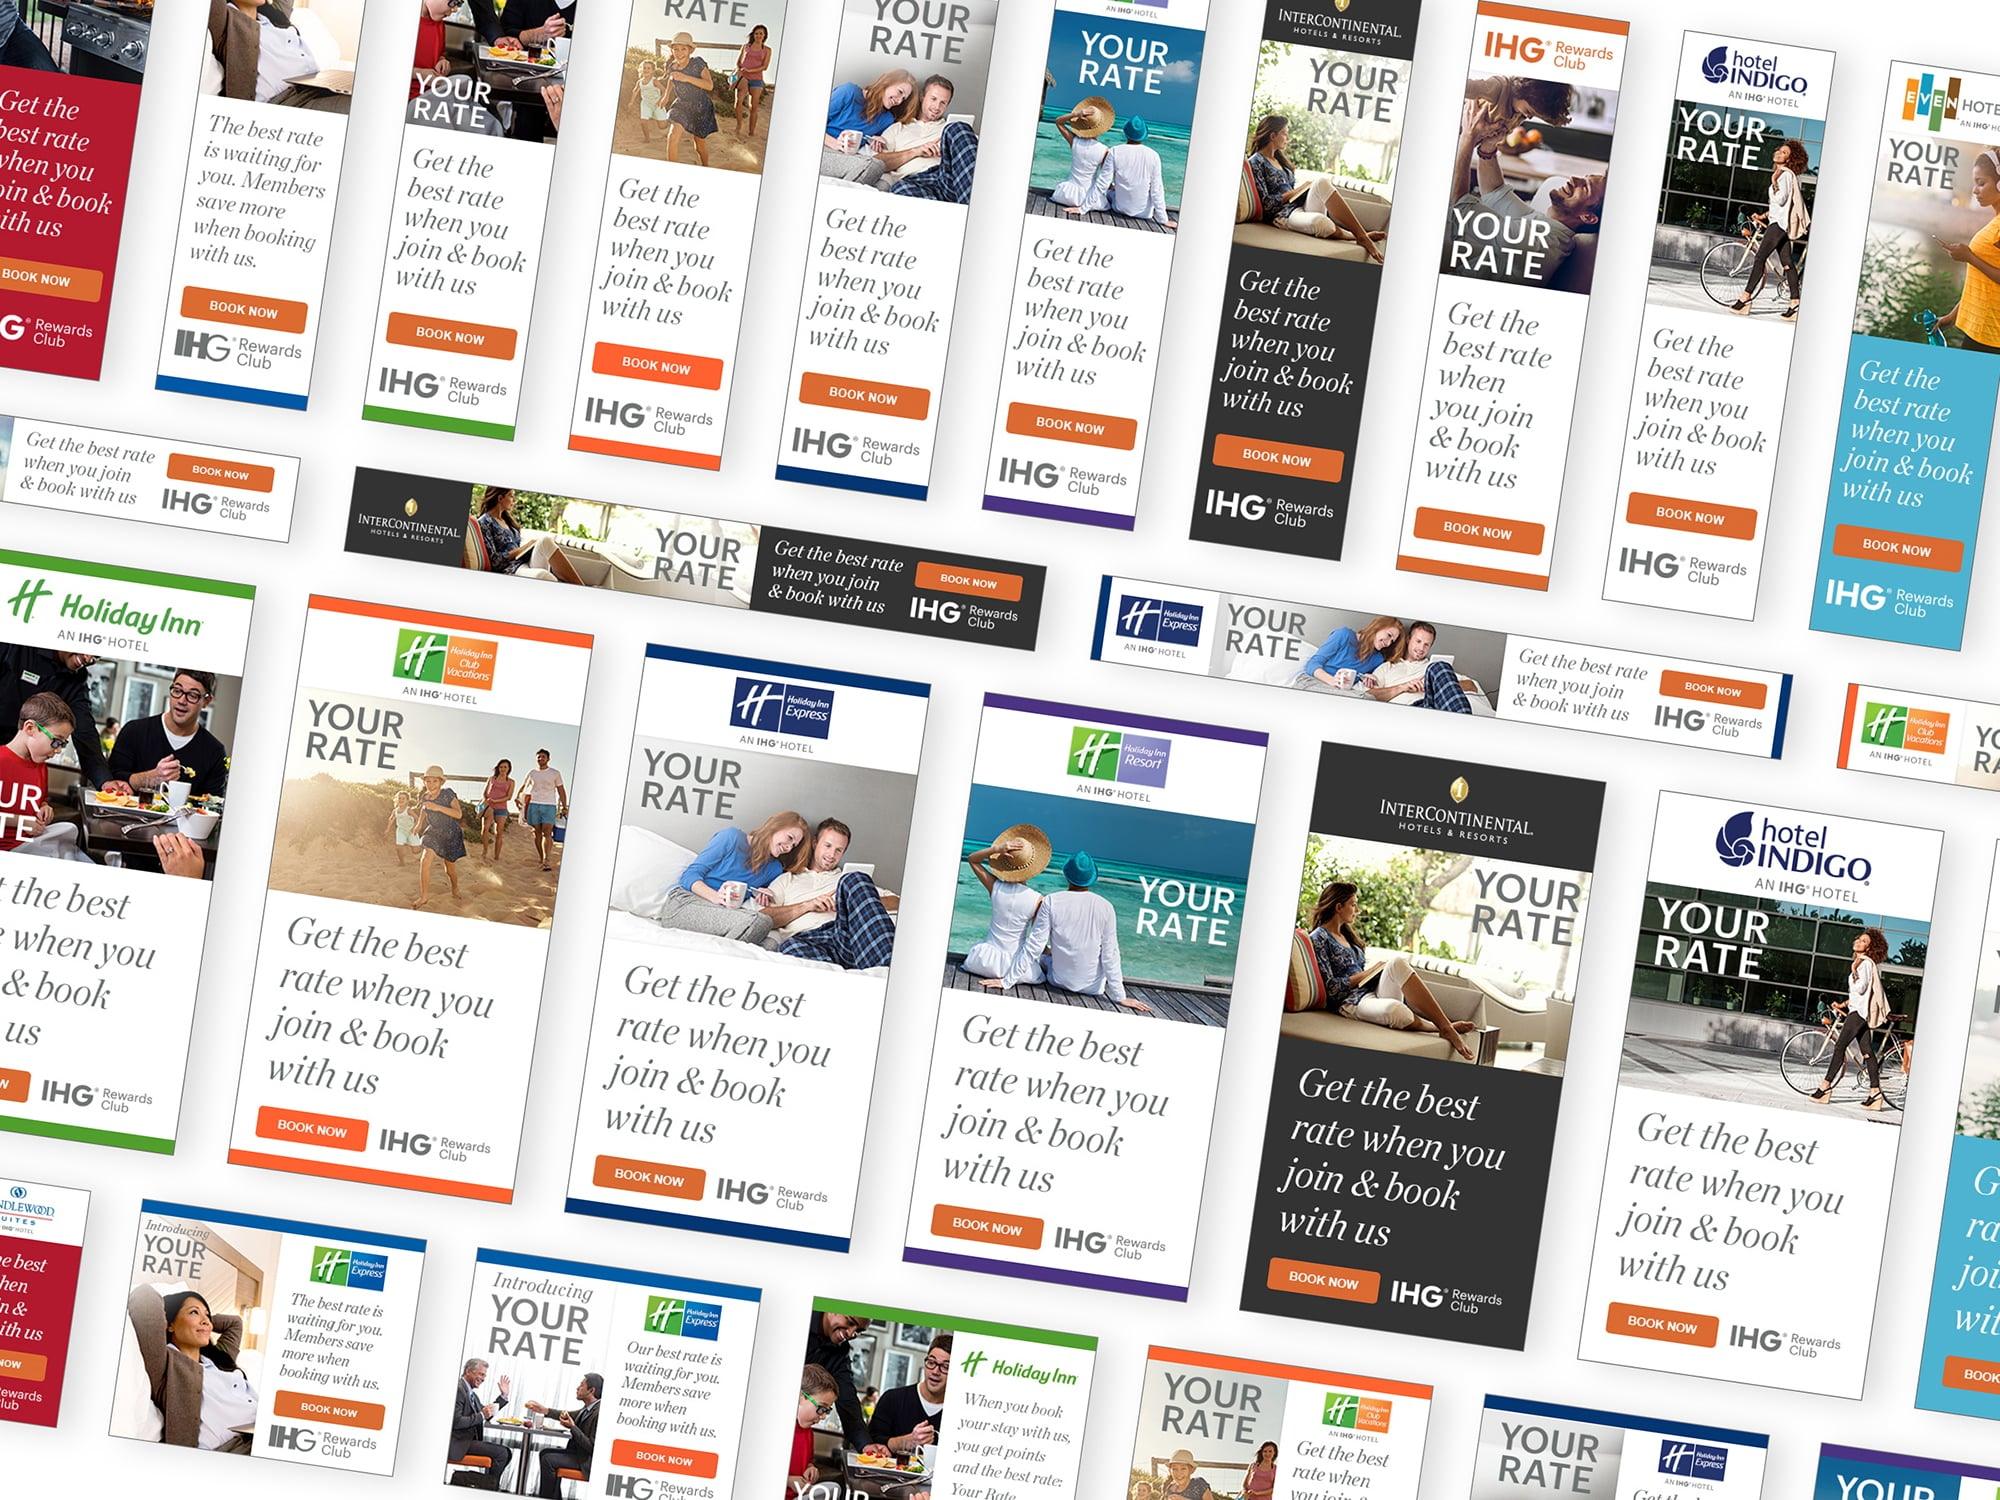 A compilation of banner ads for a campaign called 'Your Rate'